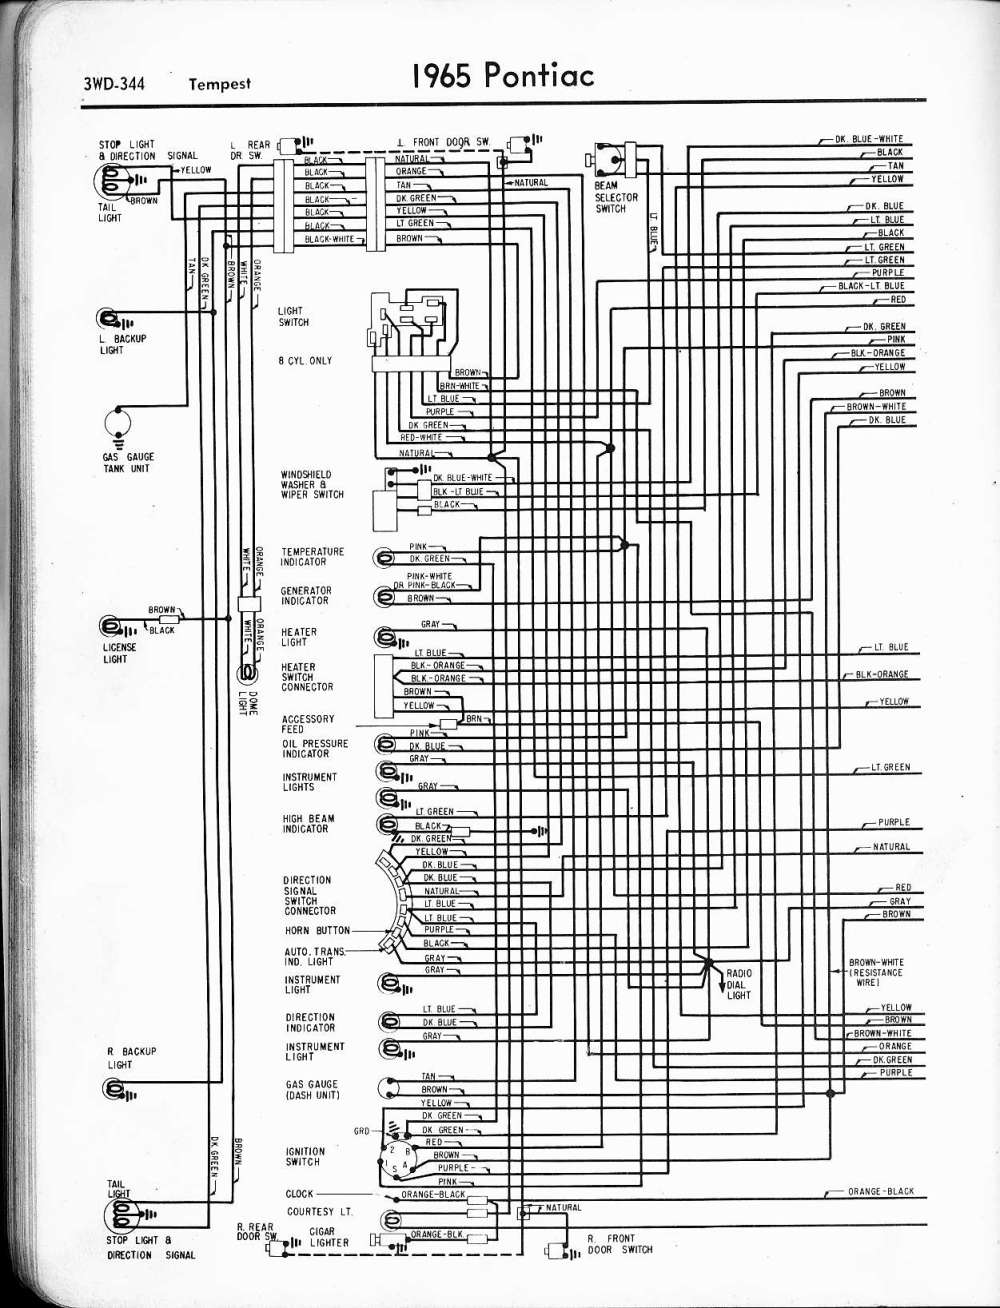 medium resolution of 1955 pontiac wiring diagram 16 16 stromoeko de u2022pontiac wiring harness diagram wiring library rh